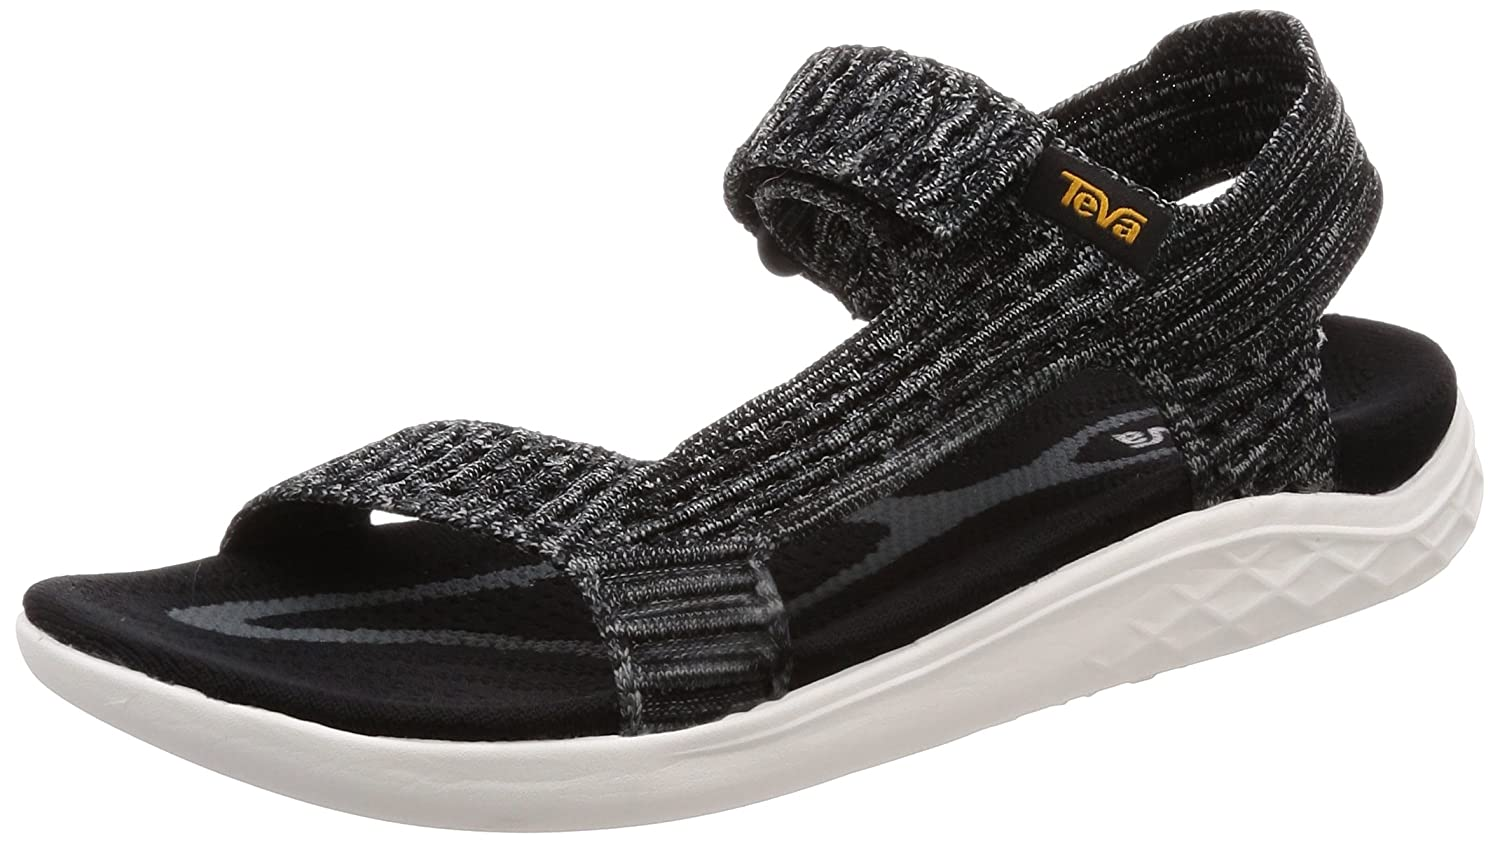 Teva - Men's Terra-Float 2 Knit Universal - Black - 7 B078HR5F4T 10 W US|Black